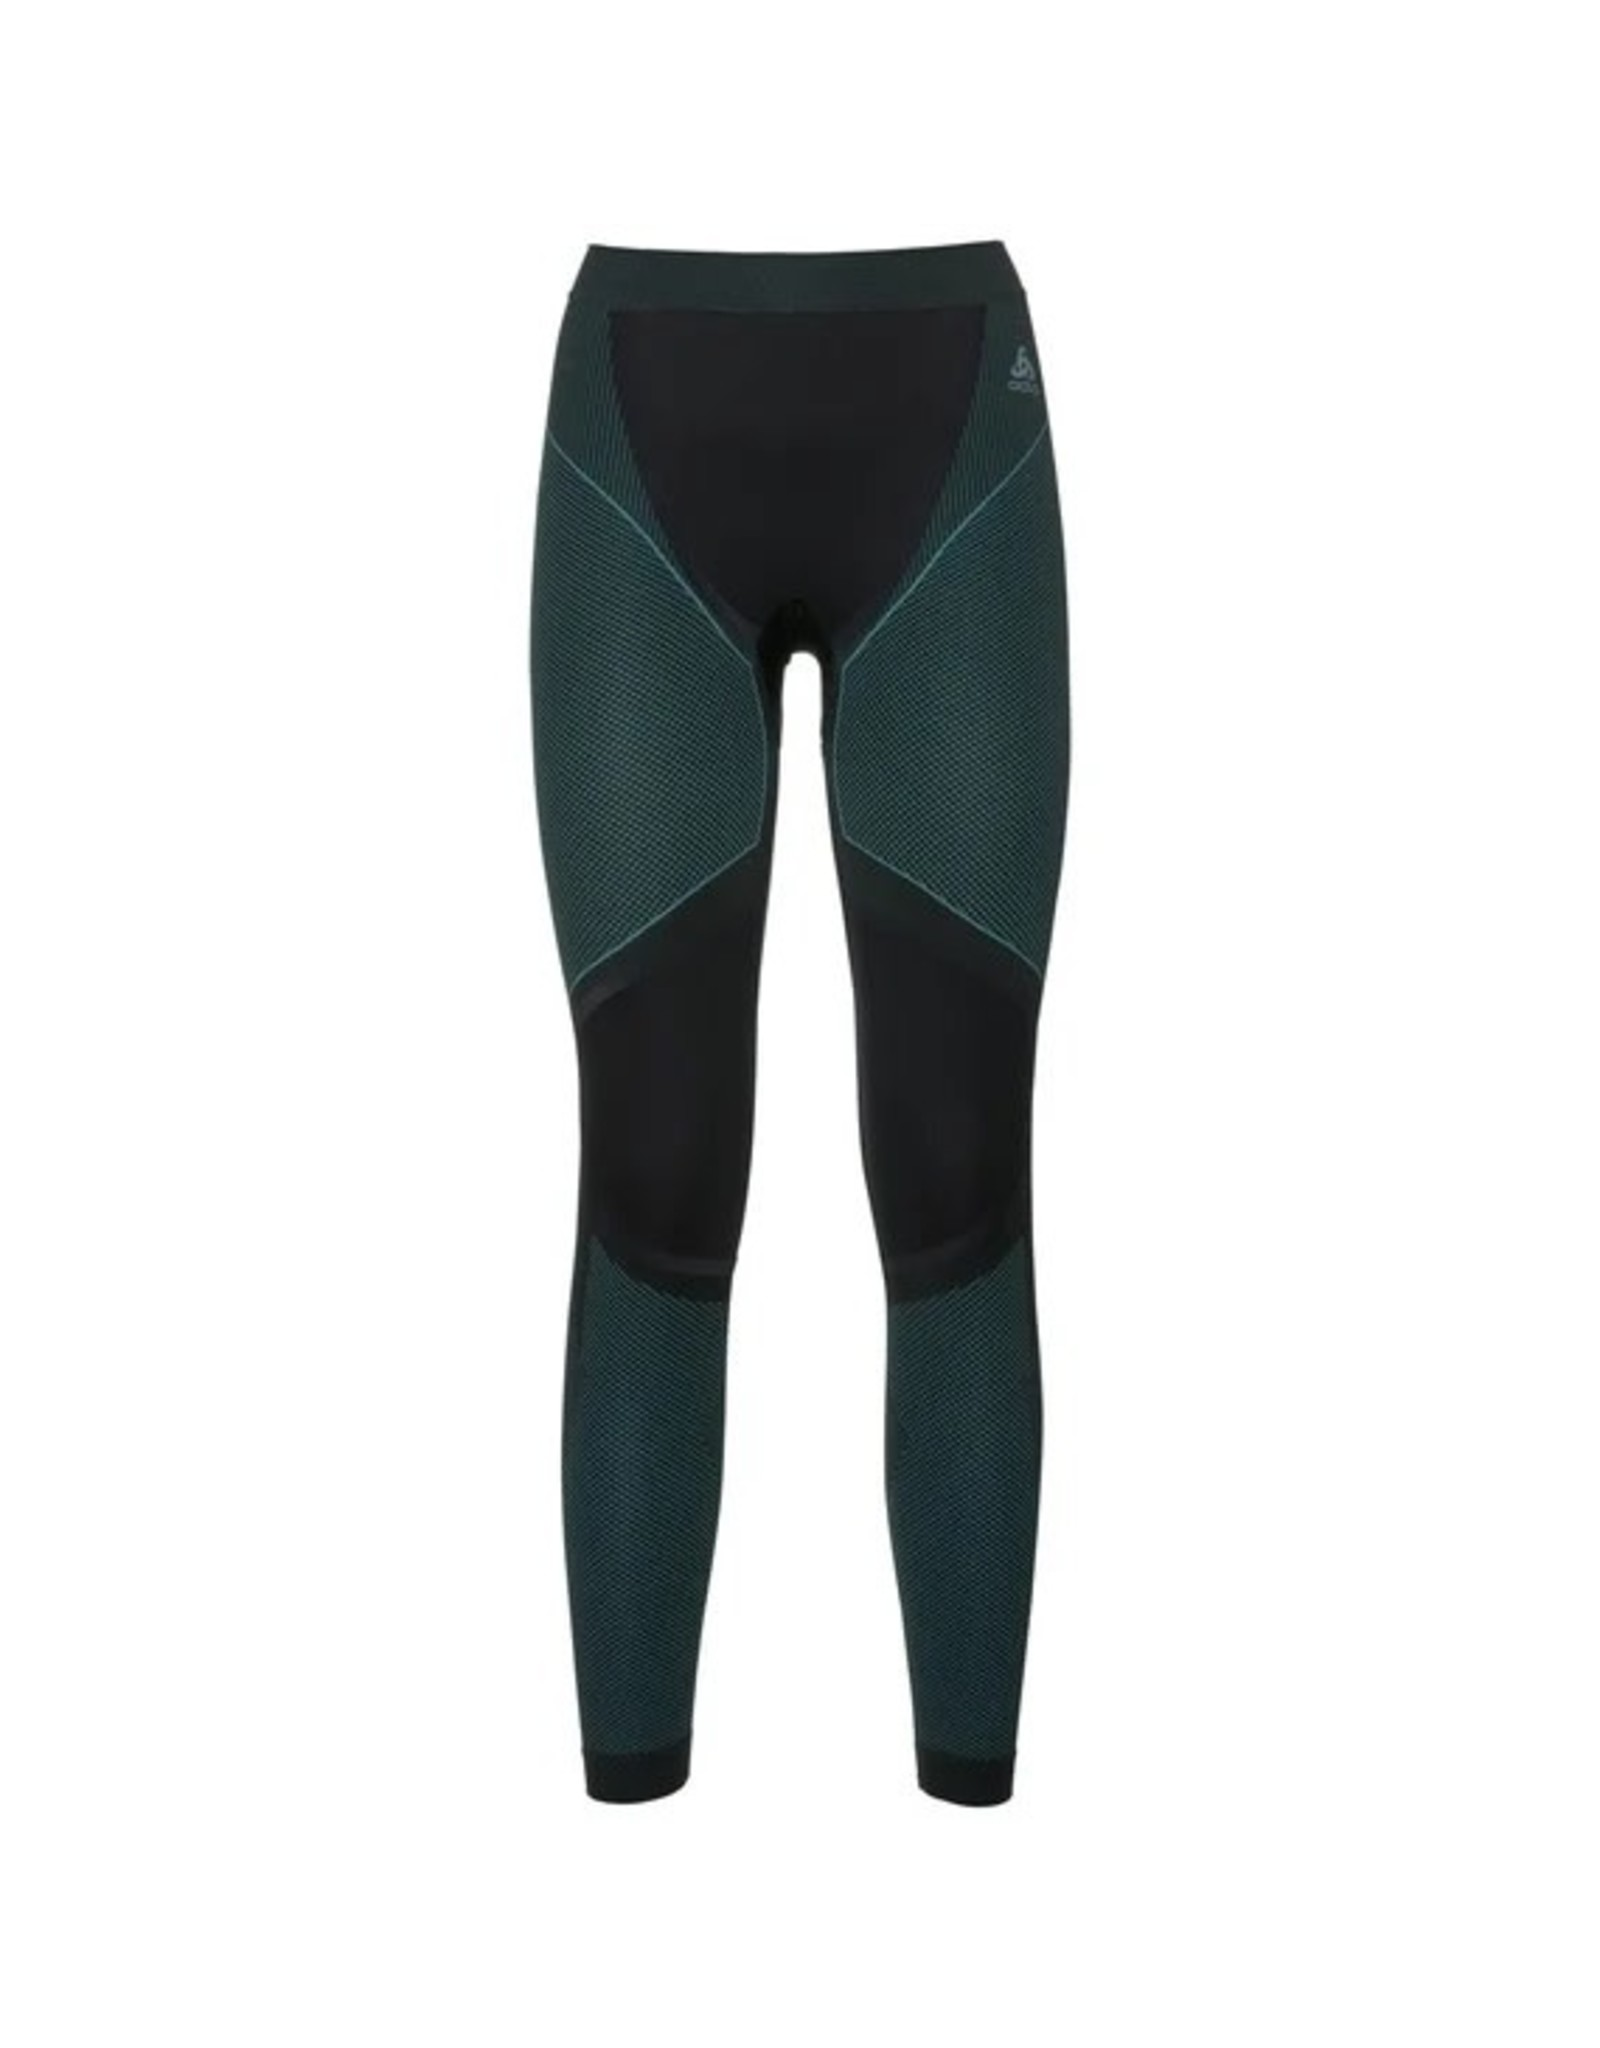 Odlo '21, ODLO, SUW Performance Windshield XC Baselayer Tights W's